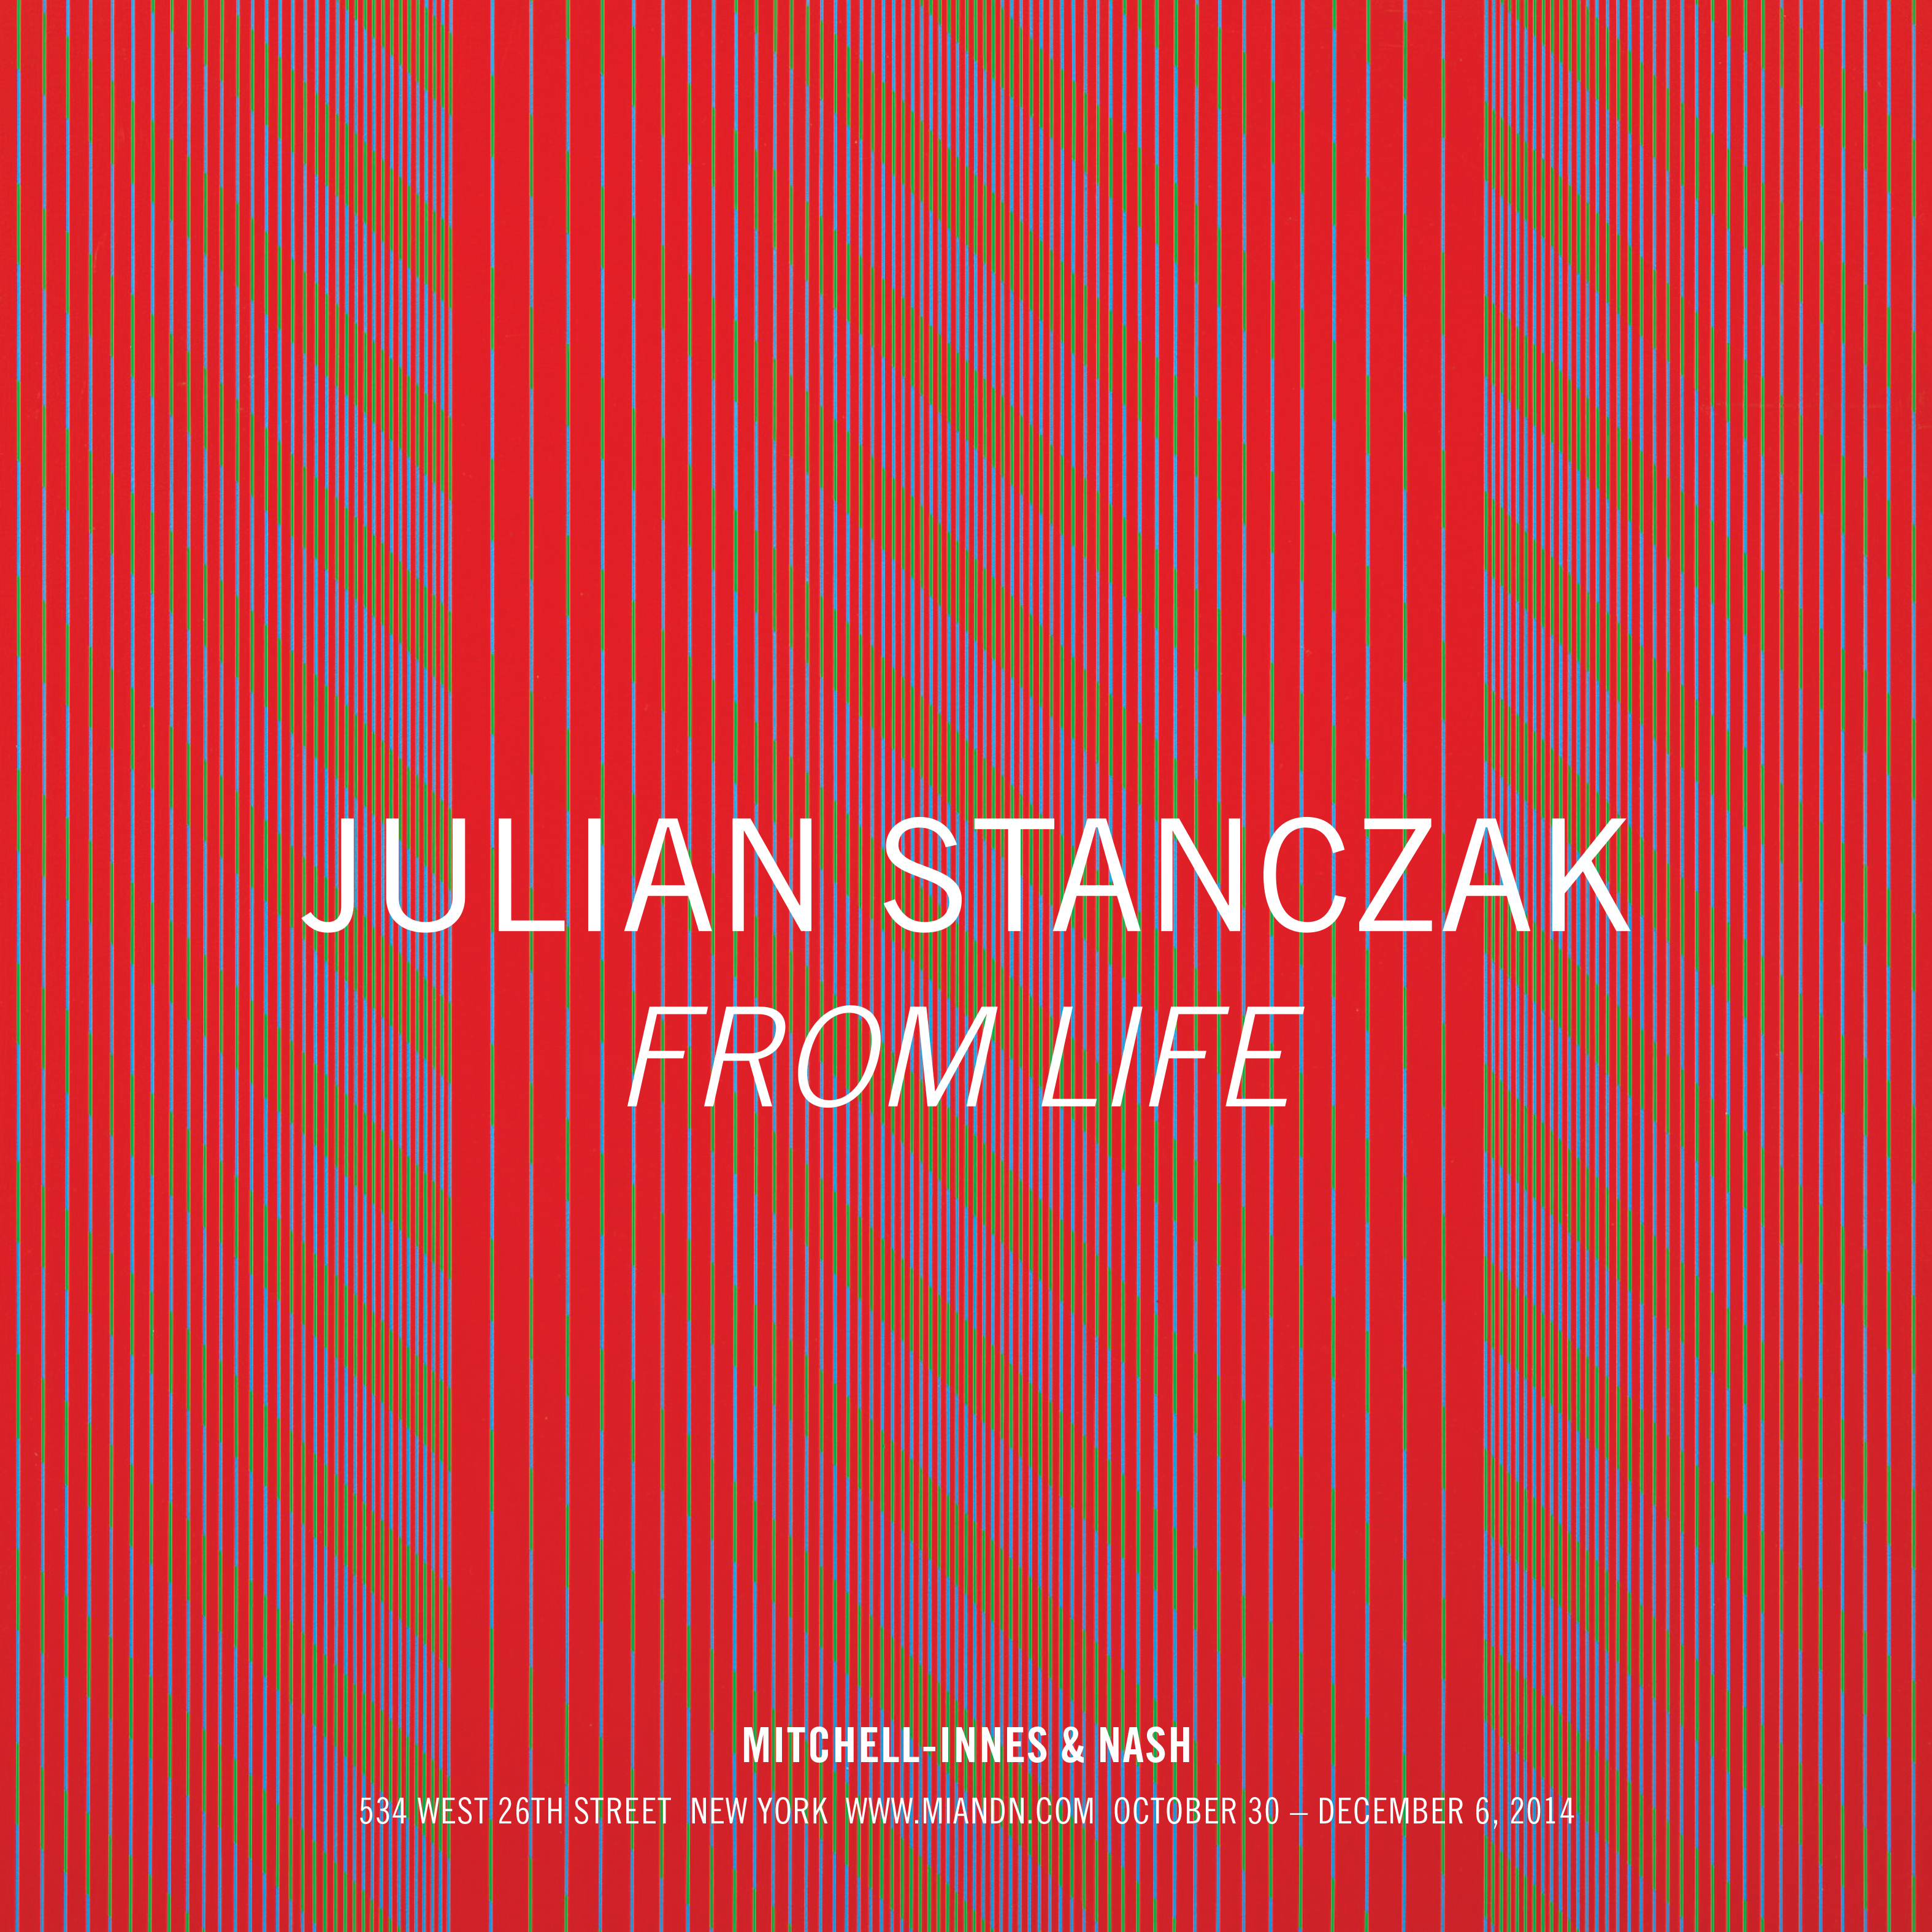 From the Mitchell-Innes show Julian Stanczak: from Life